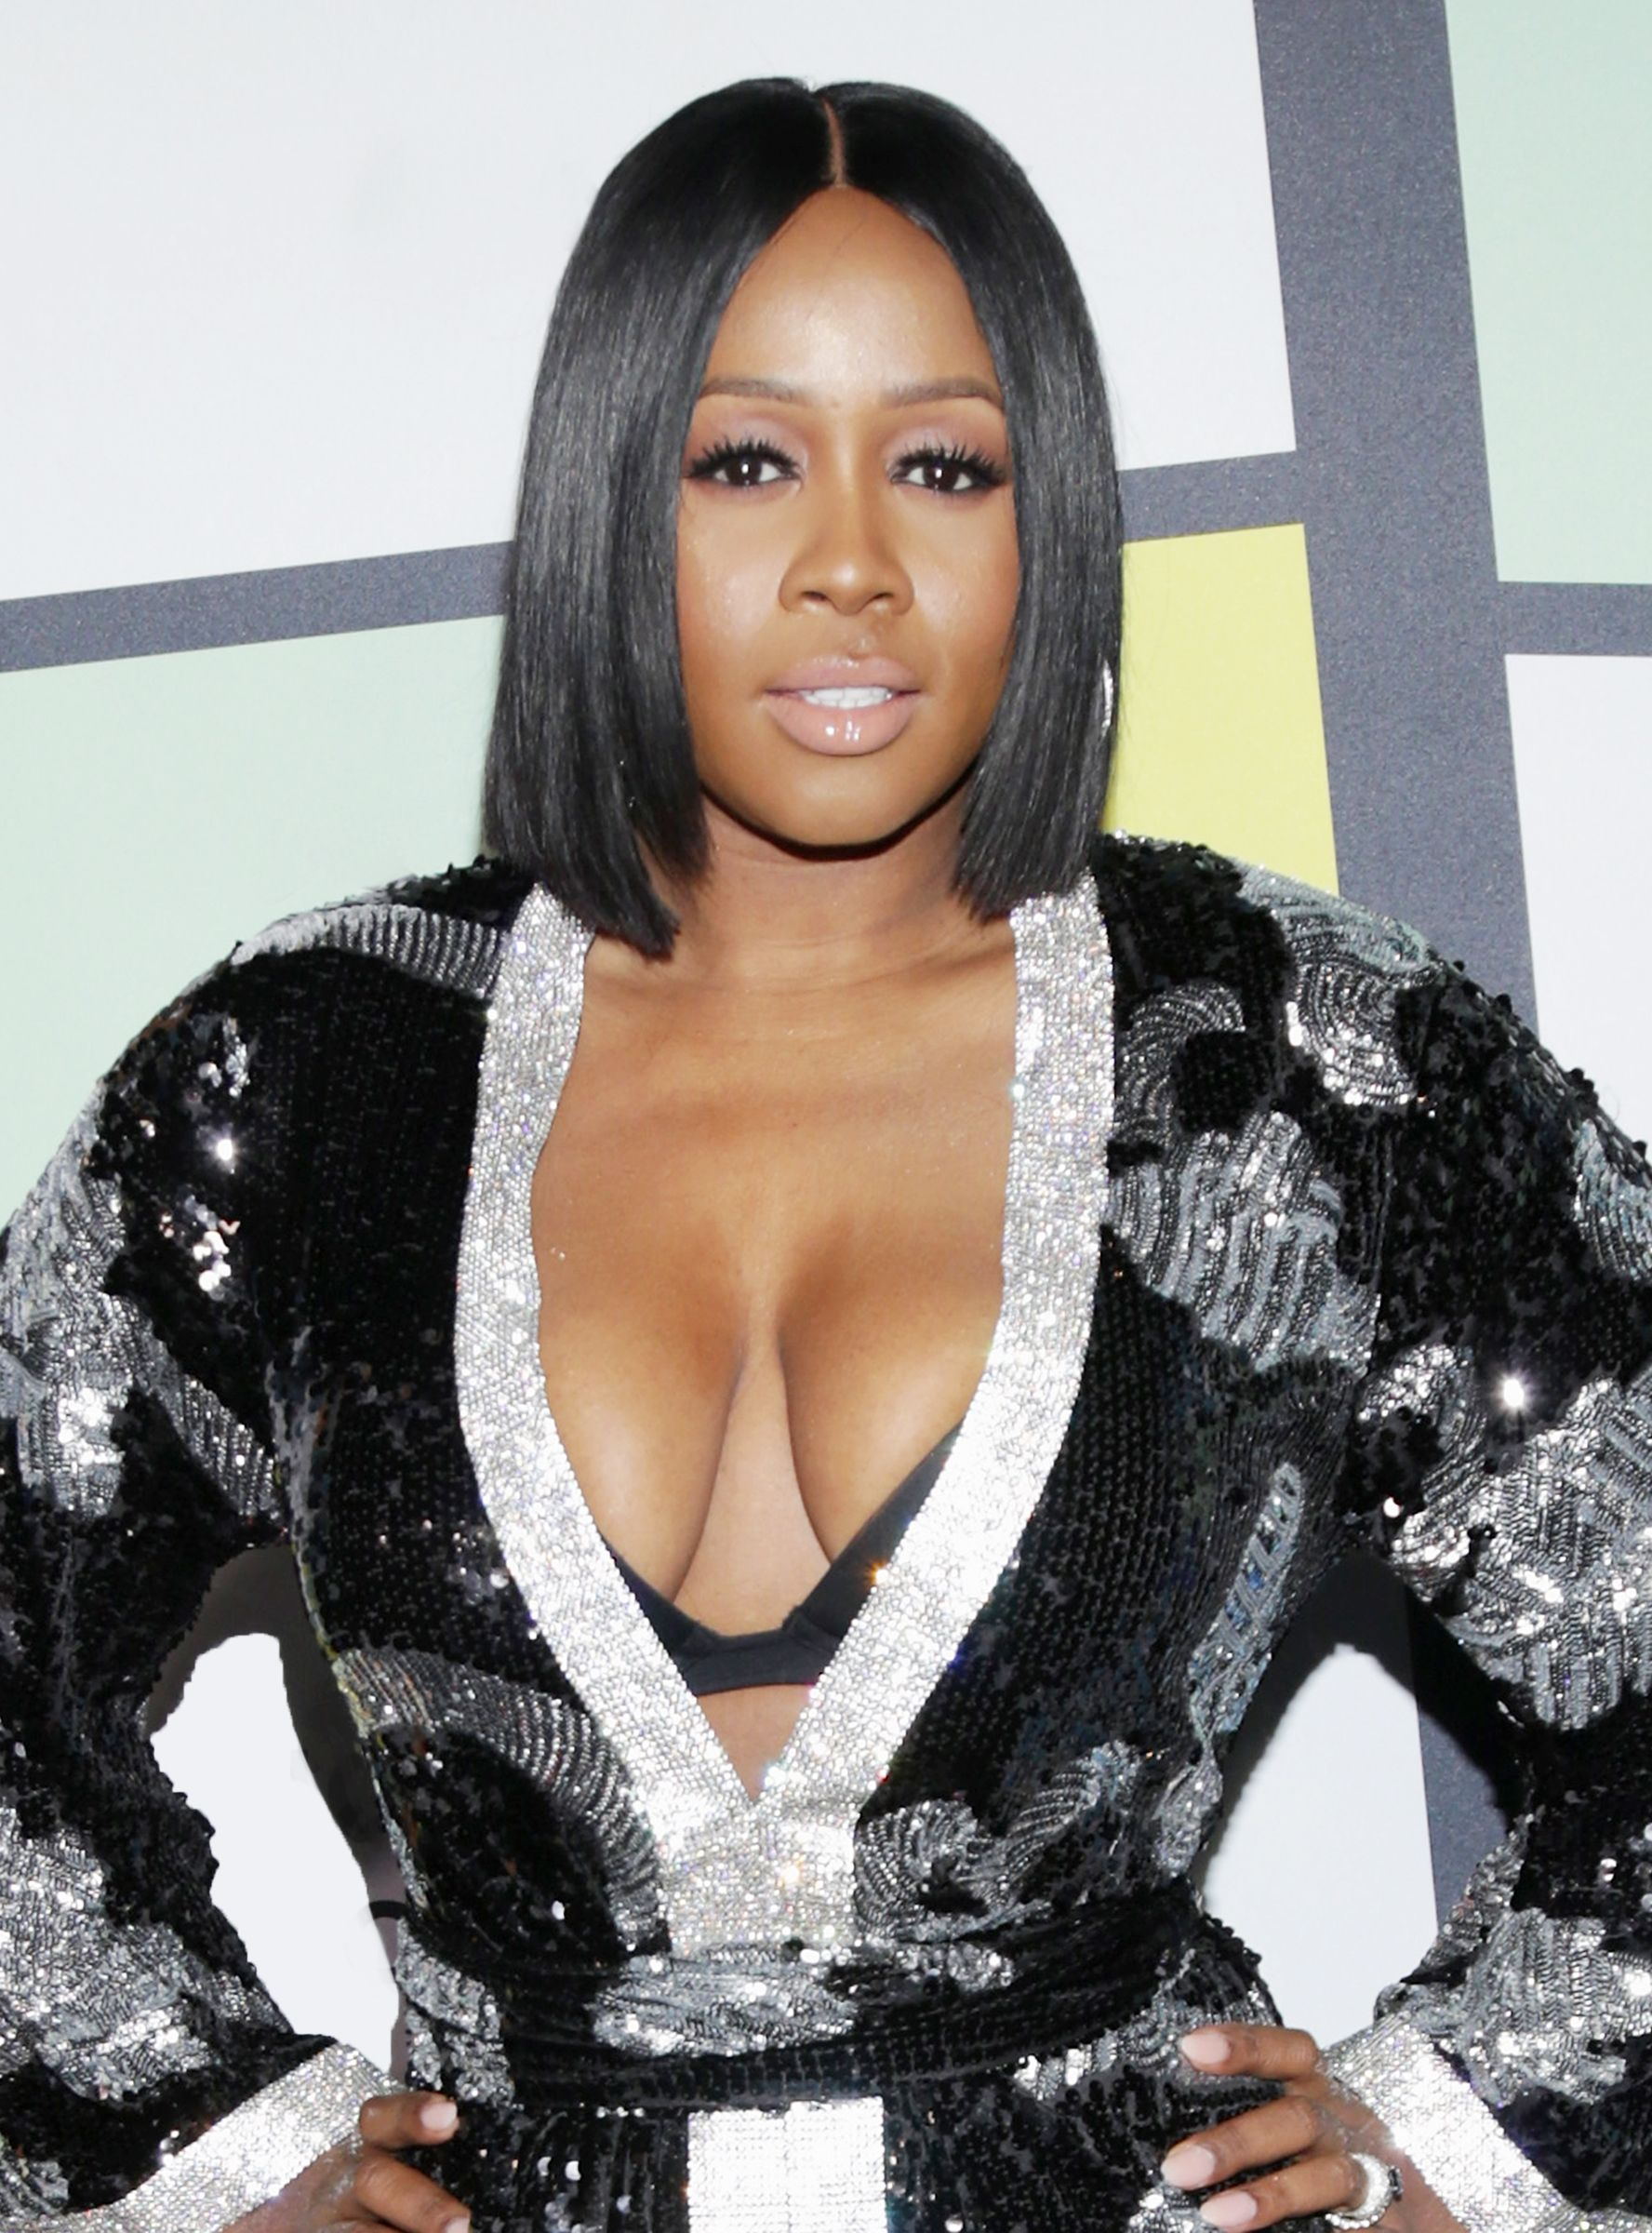 It Looks Like Remy Ma Is Finally About To Have Her Moment With